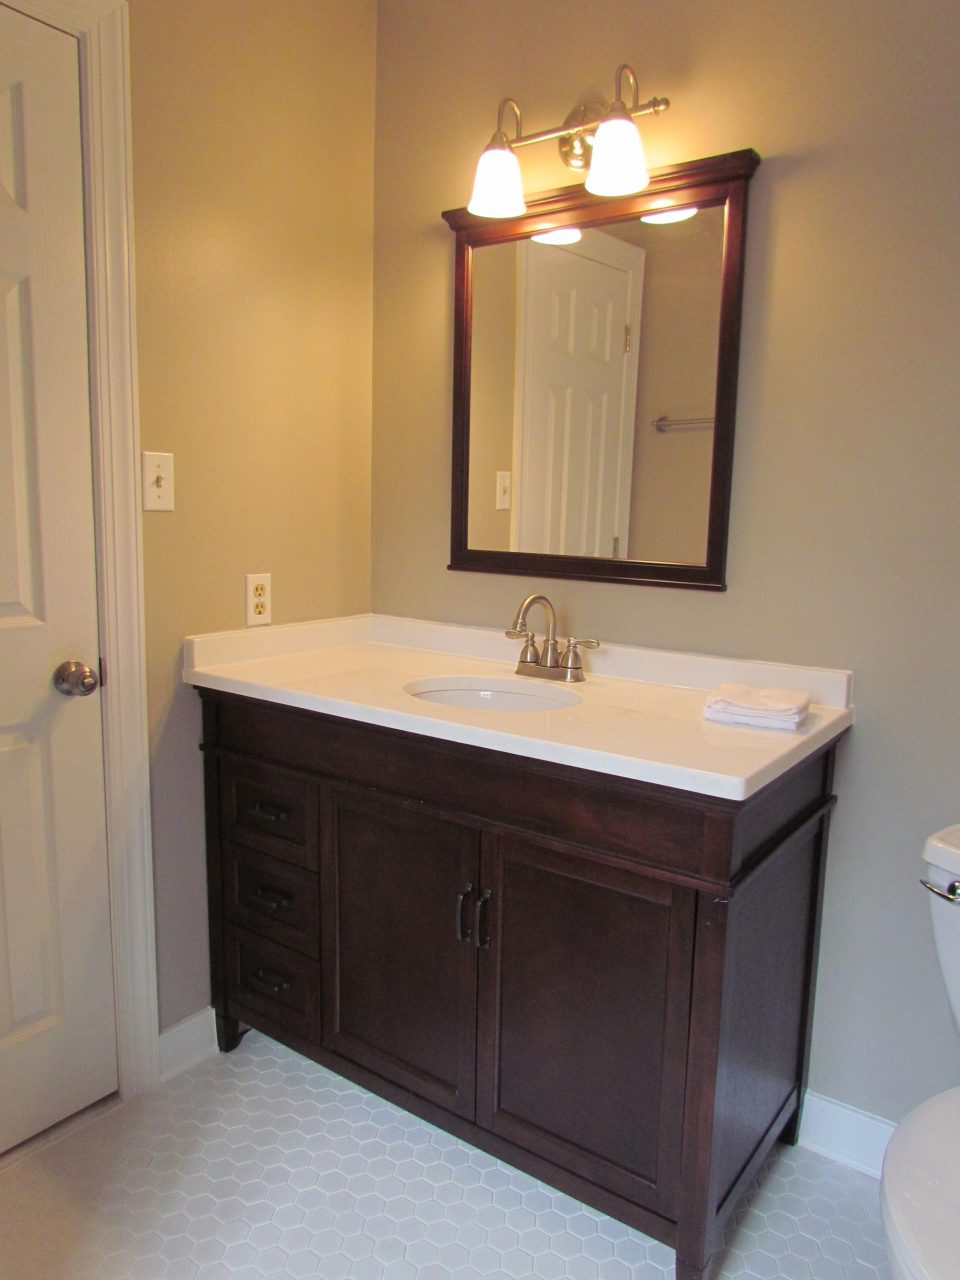 Rva Remodeling Services Rva Remodeling Llc